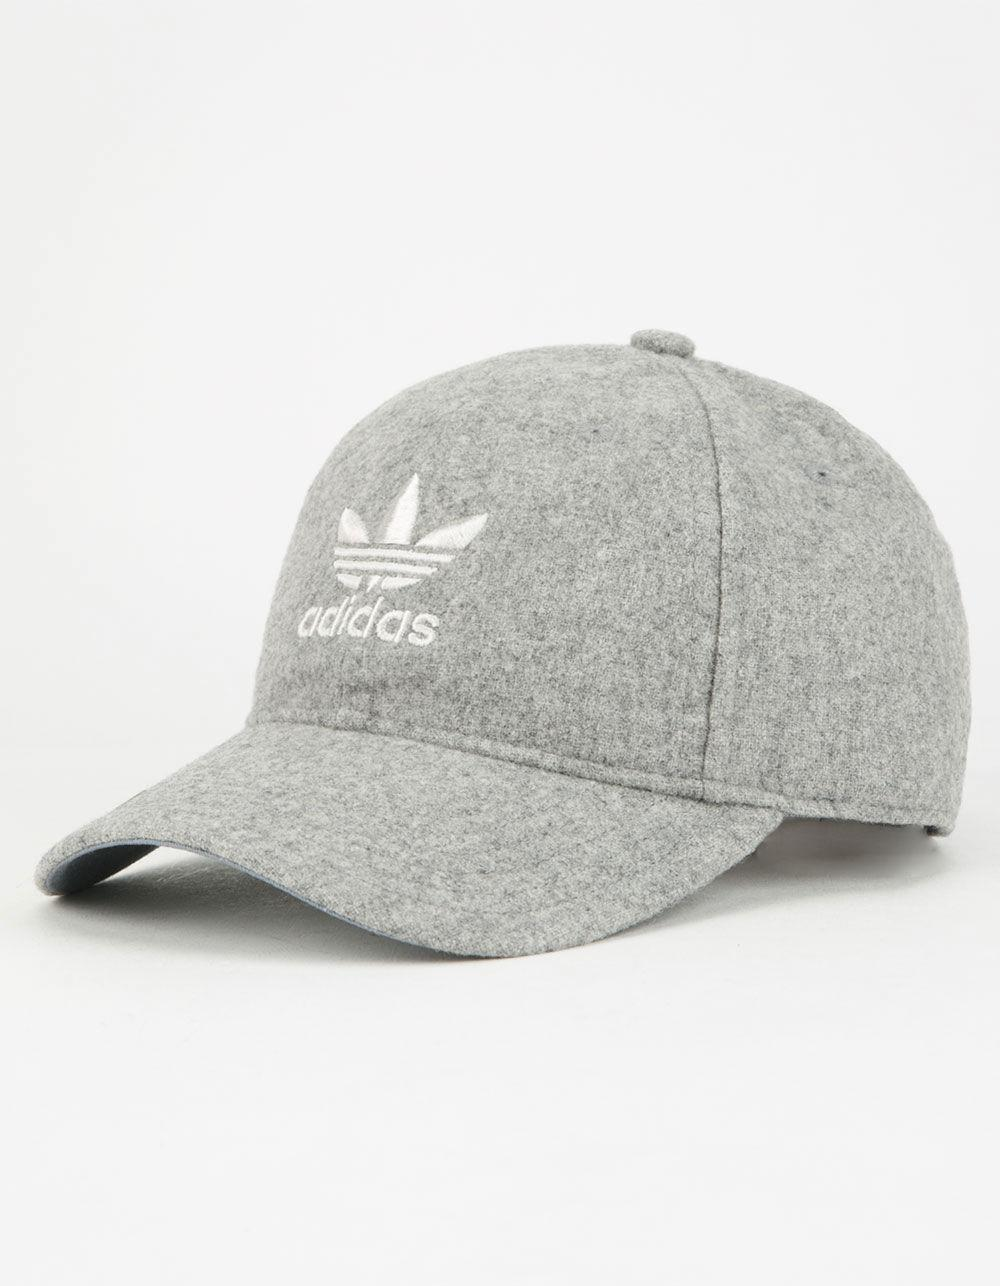 Lyst - adidas Originals Relaxed Plus Womens Strapback Hat in Gray 9ecbdcd084